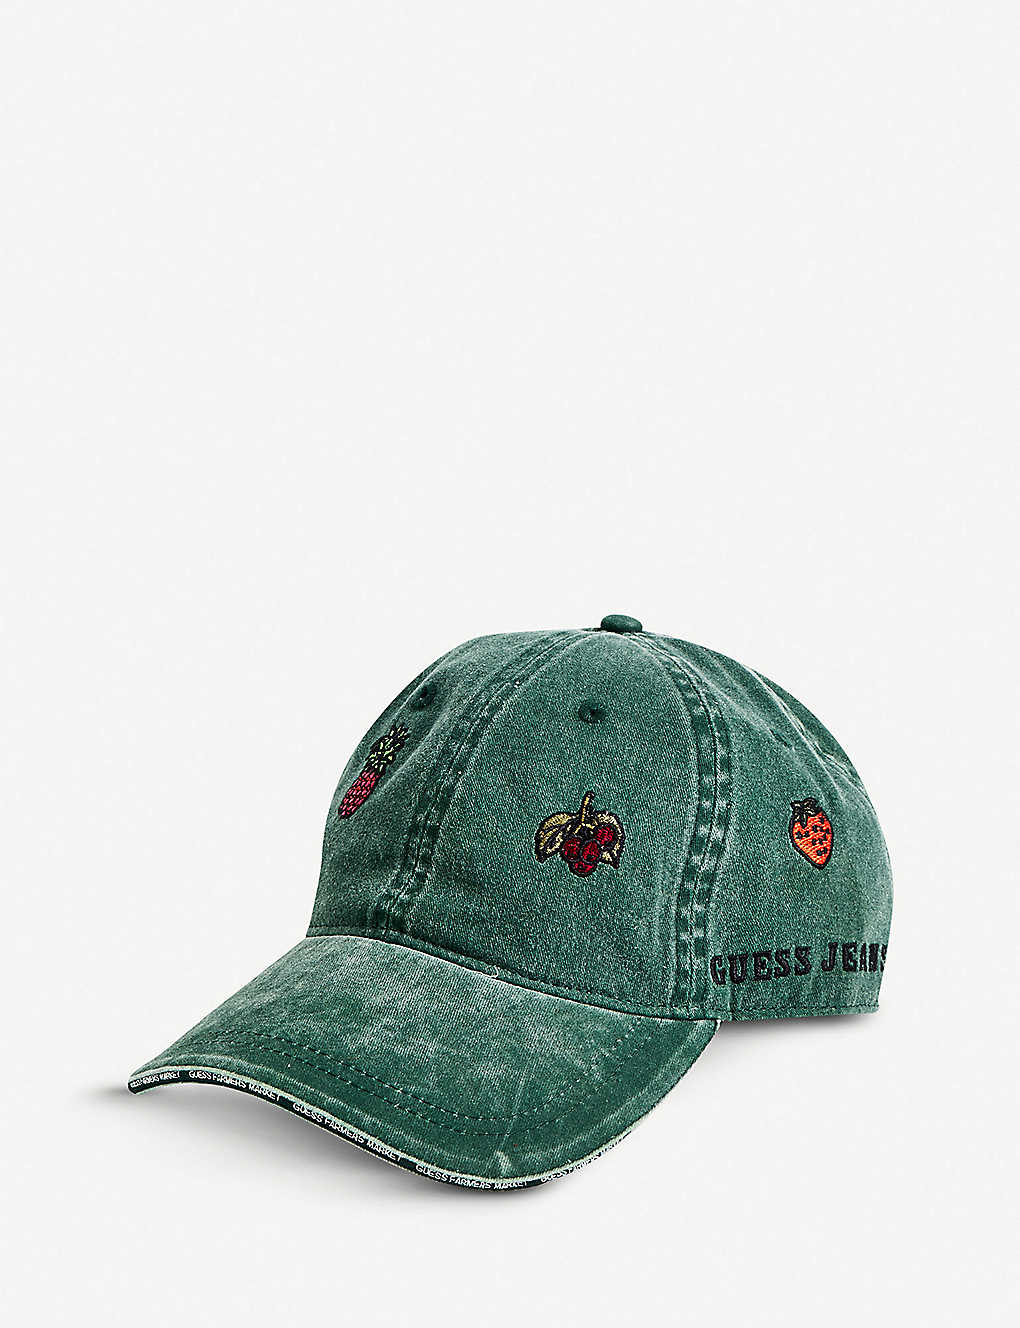 ee6bf323 GUESS JEANS USA - Farmers Market embroidered cotton baseball cap ...